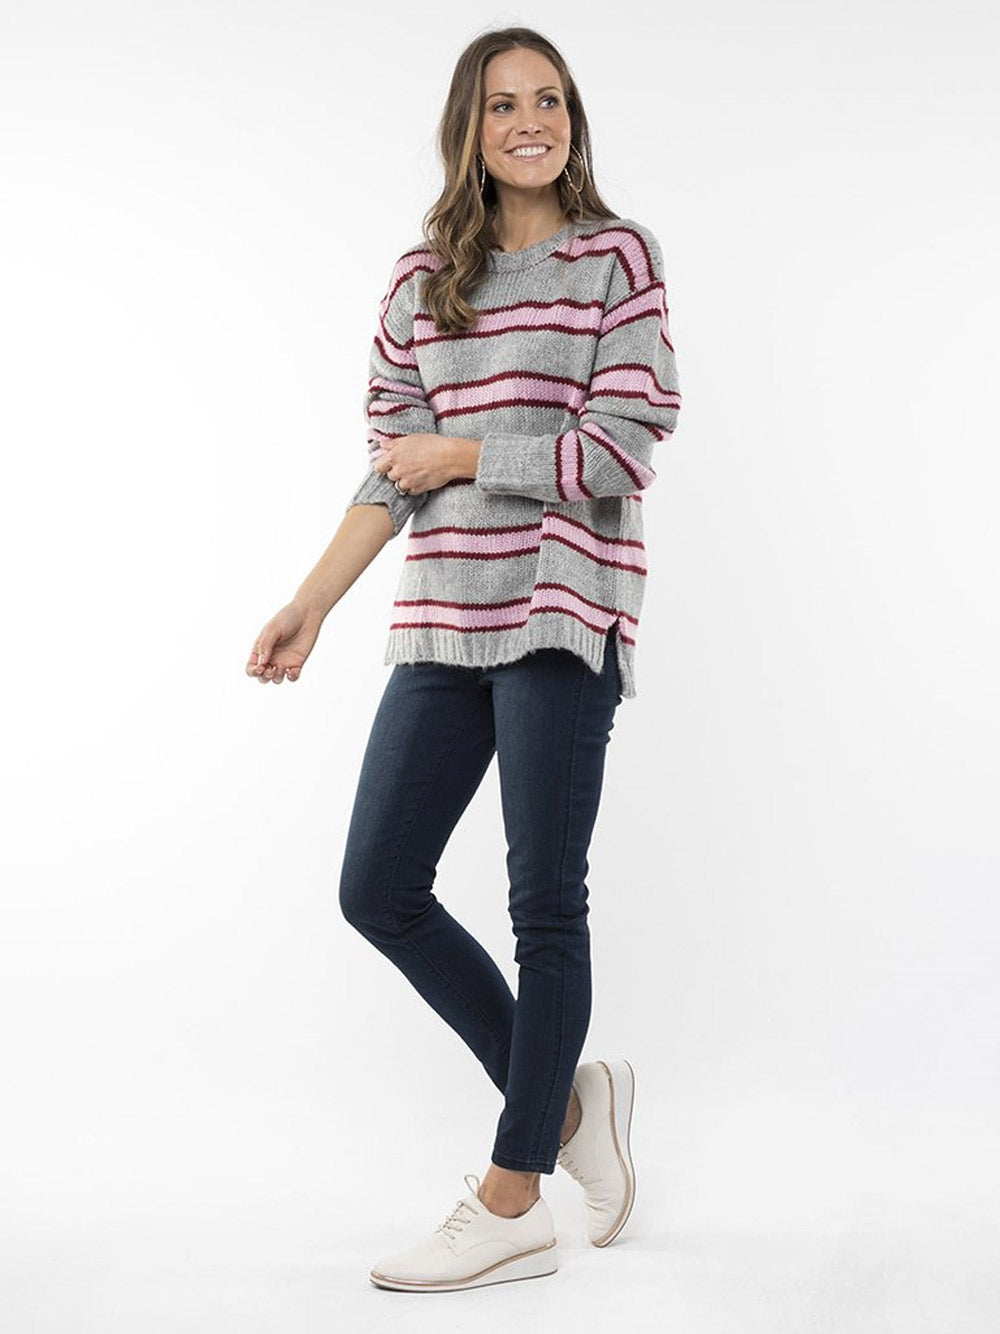 ELM LIFESTYLE Candy Stripe Knit